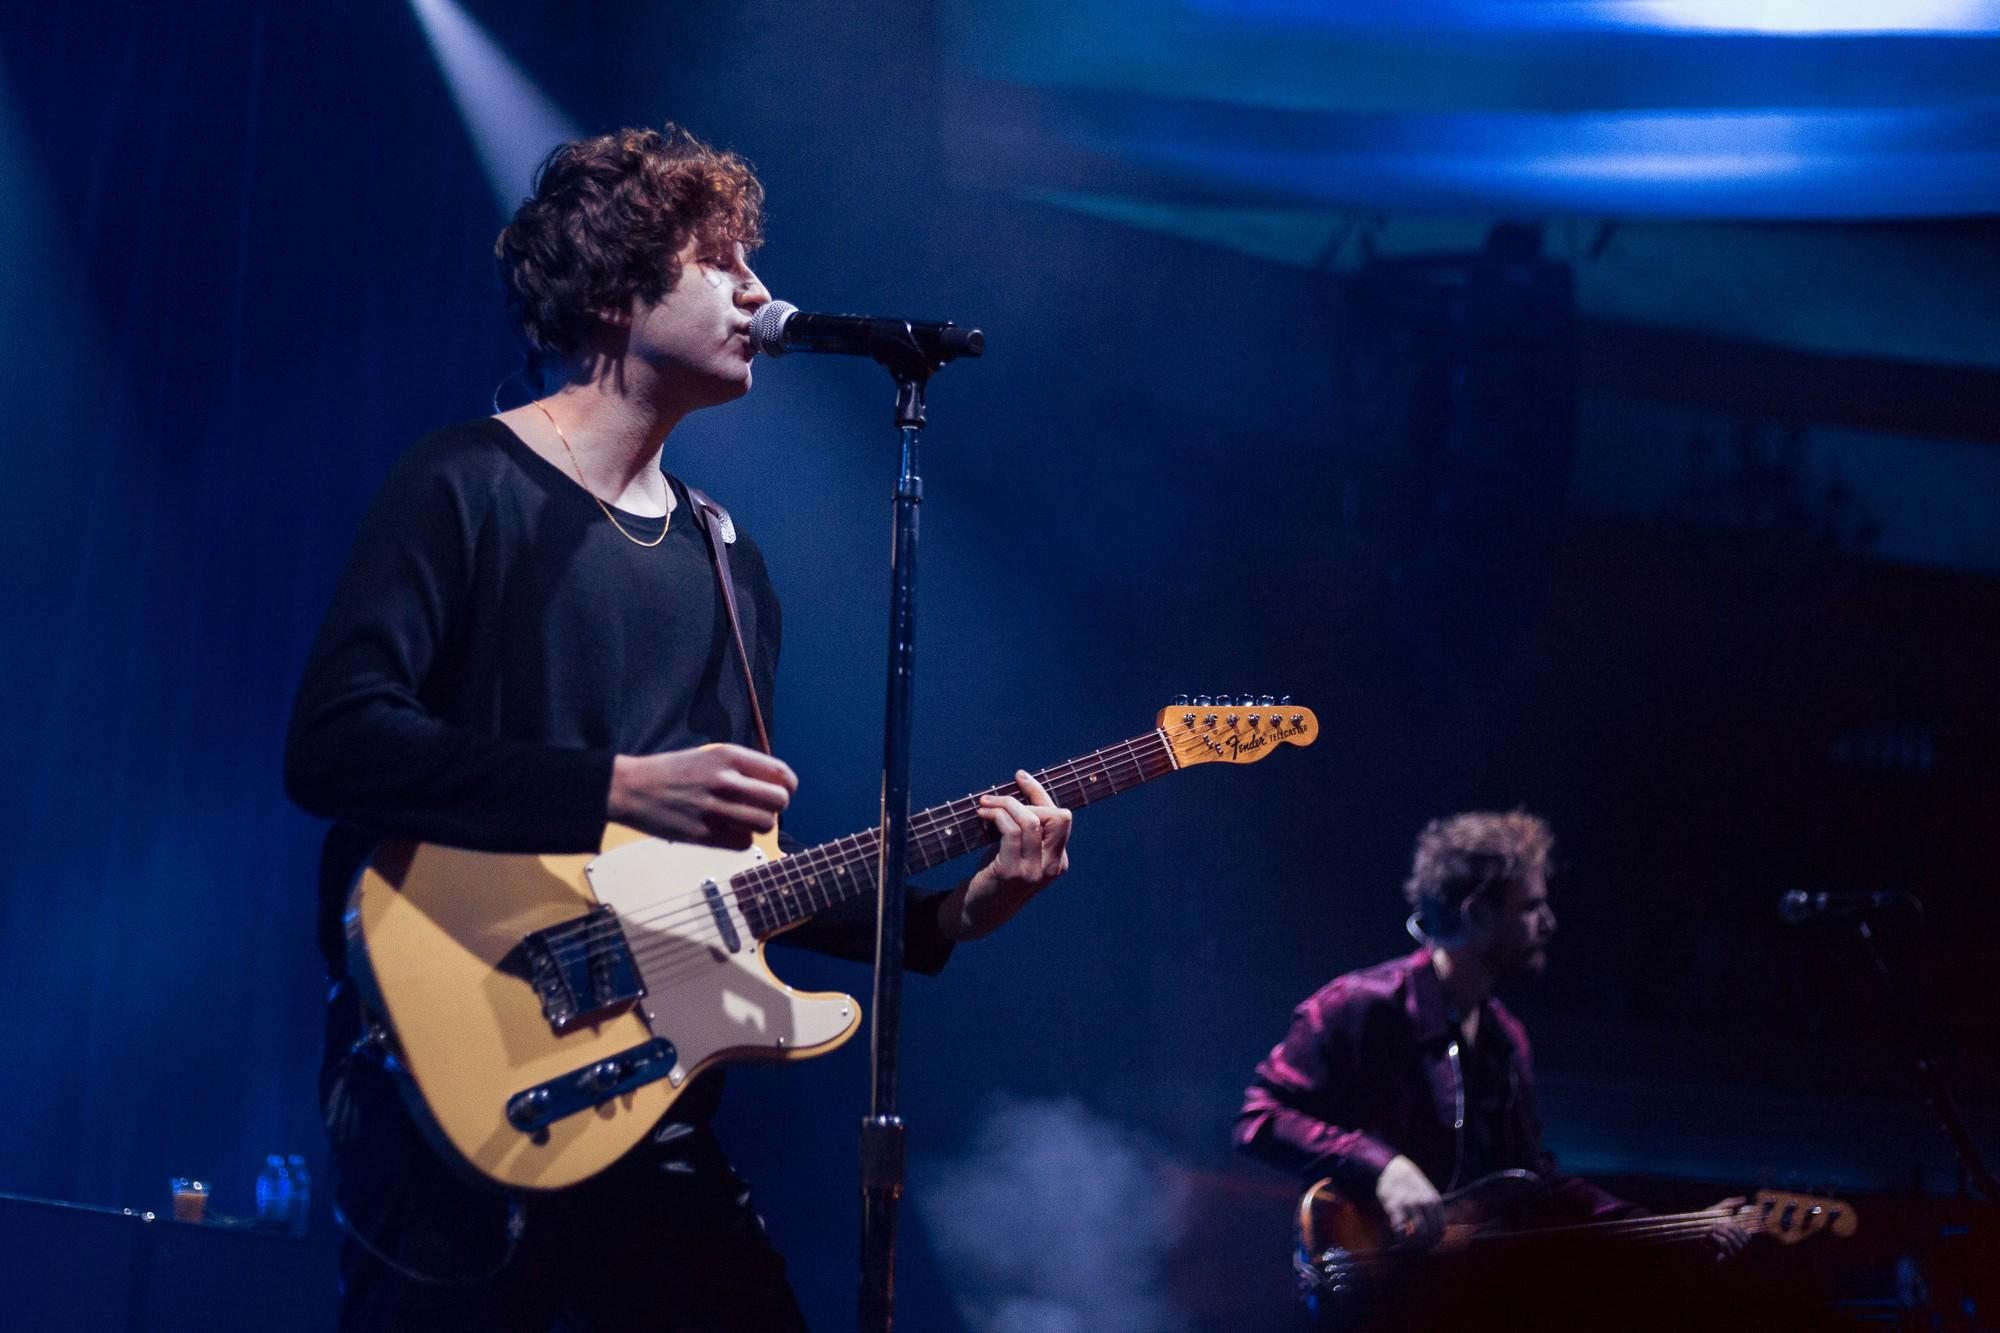 Kooks frontman Luke Pritchard at The Hollywood Palladium on Wednesday, Feb. 12. Their tour will continue across the U.S. until the beginning of March. Photo credit: Joshua Pacheco